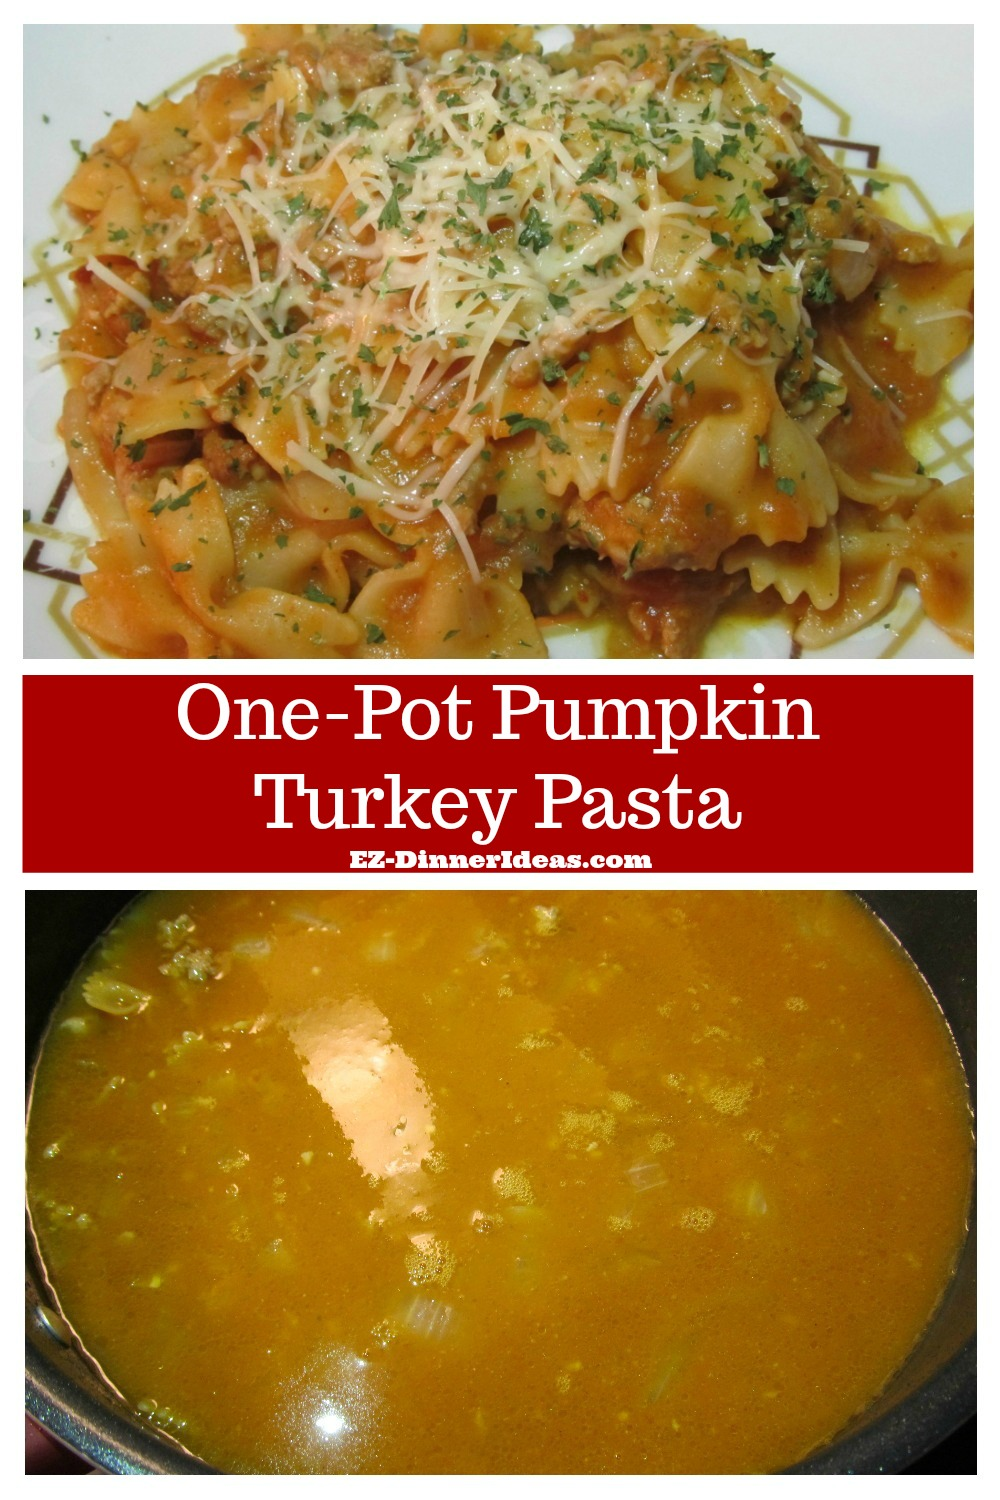 Ground Turkey Recipe | One-Pot Pumpkin Turkey Pasta - Enjoying Thanksgiving food can be any time during the year.  And it is a super quick and easy meal.  Dinner is ready in 30 minutes.